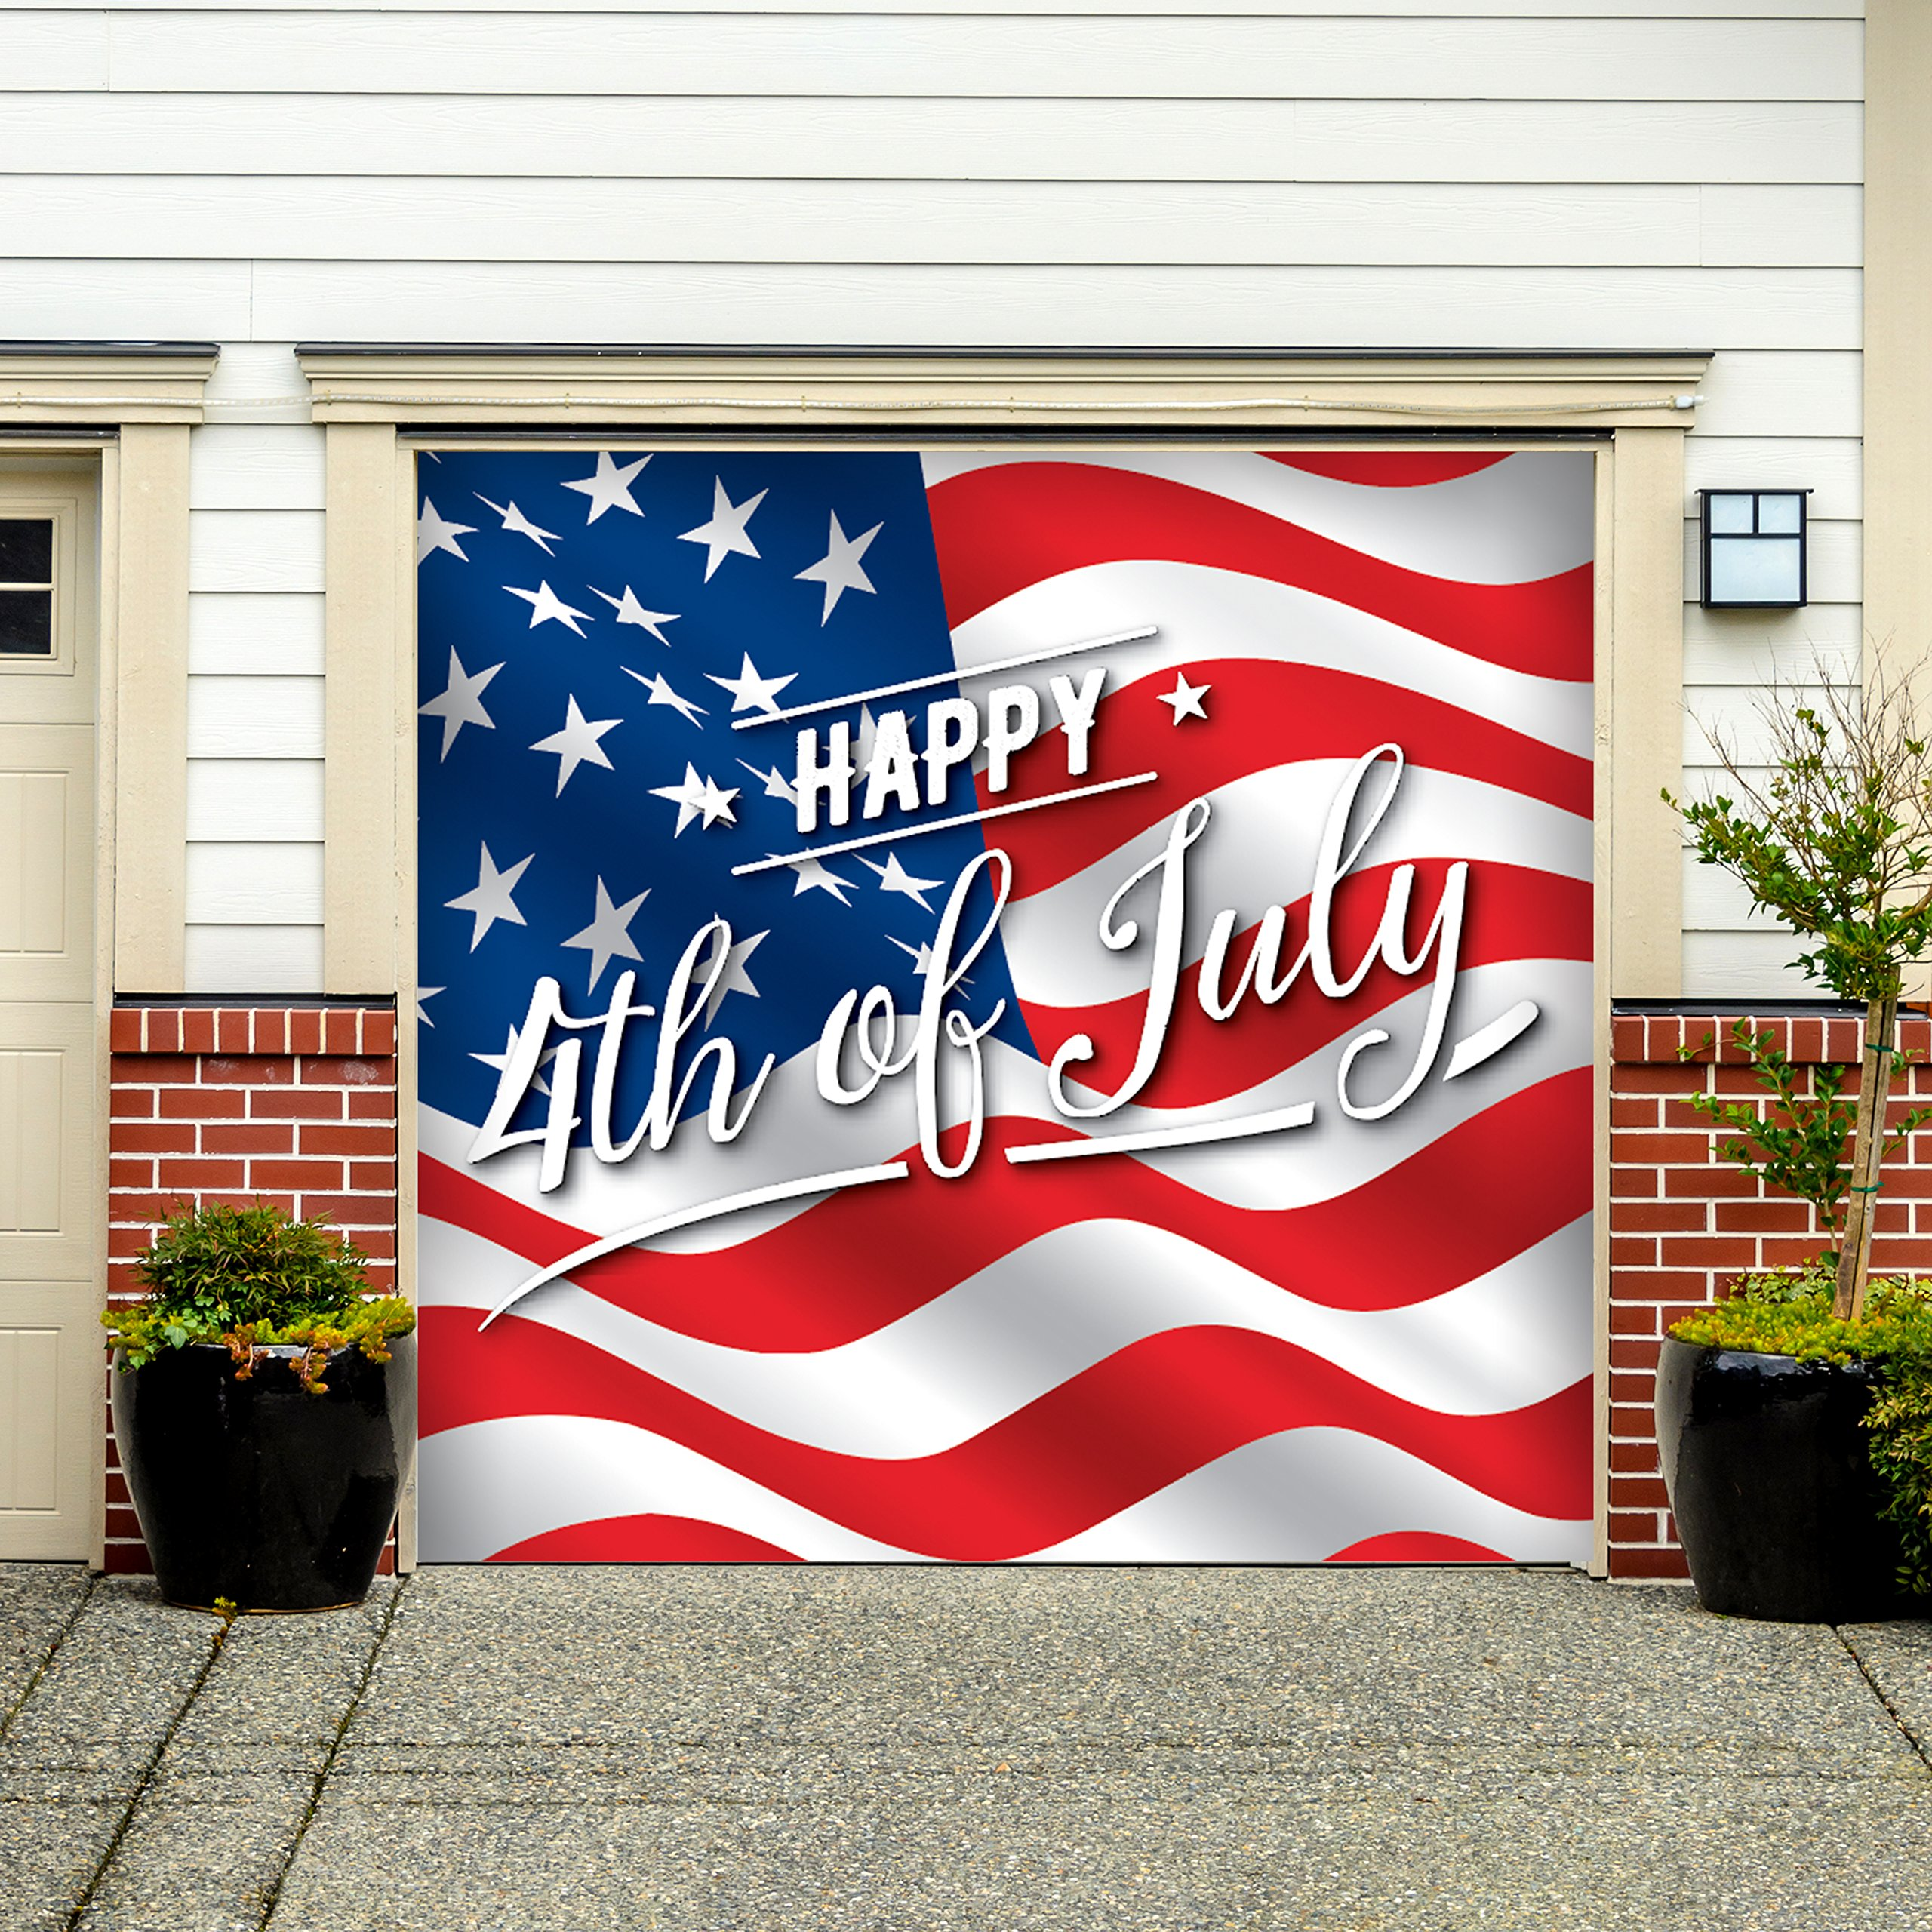 Outdoor Patriotic American Holiday Garage Door Banner Cover Mural Décoration - American Flag Happy 4th of July - Outdoor American Holiday Garage Door Banner Décor Sign 7'x 8'